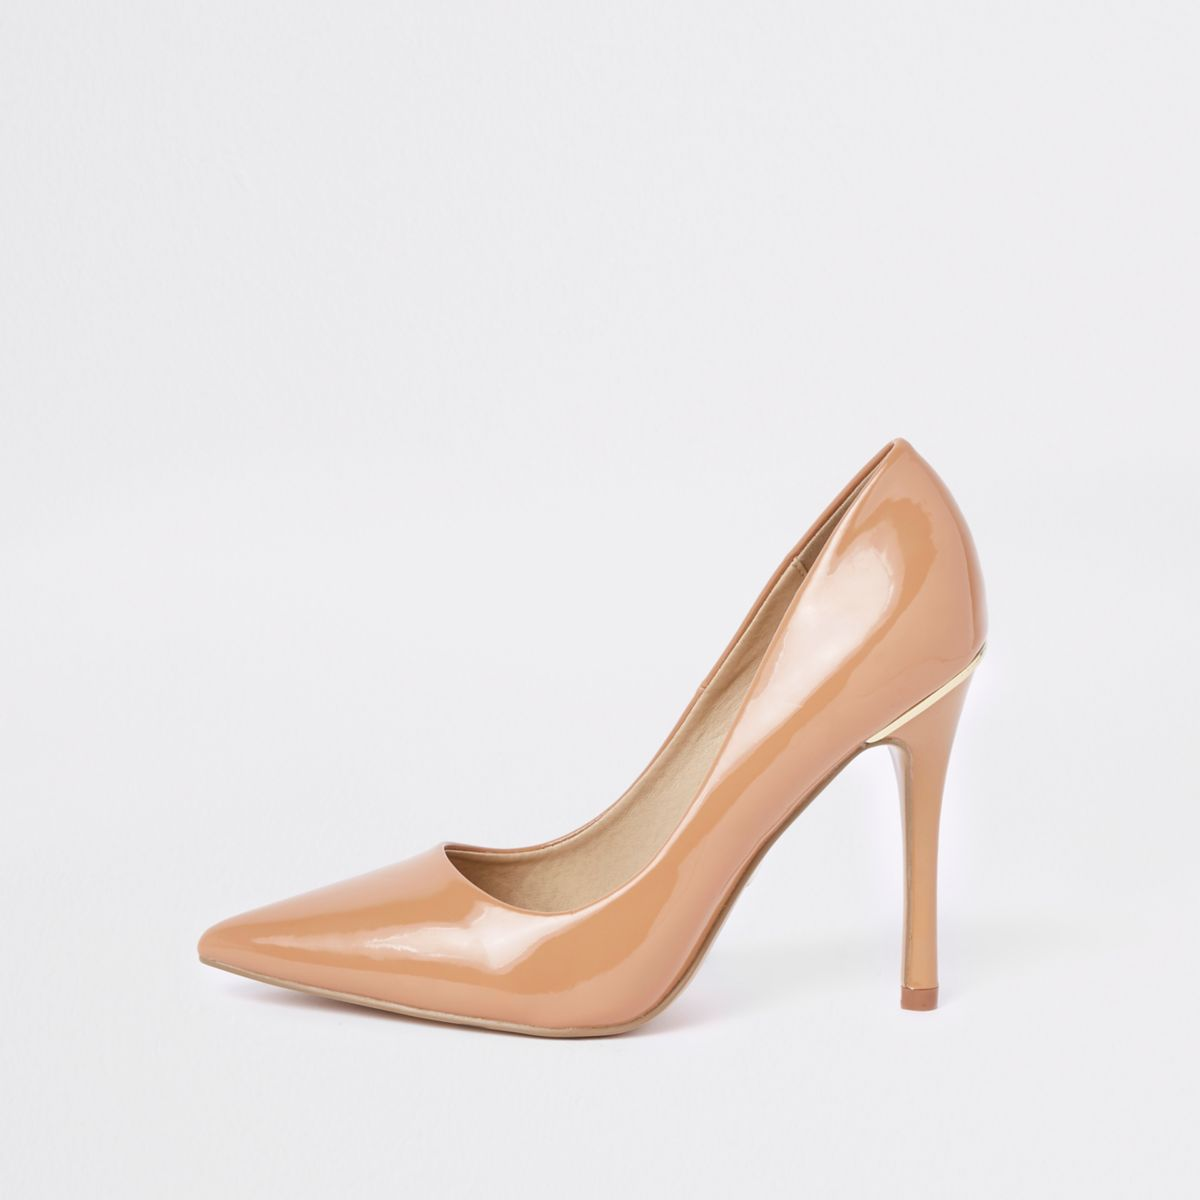 Beige patent pointed court shoes - Shoes - Shoes & Boots - women Beige patent pointed court shoes - 웹